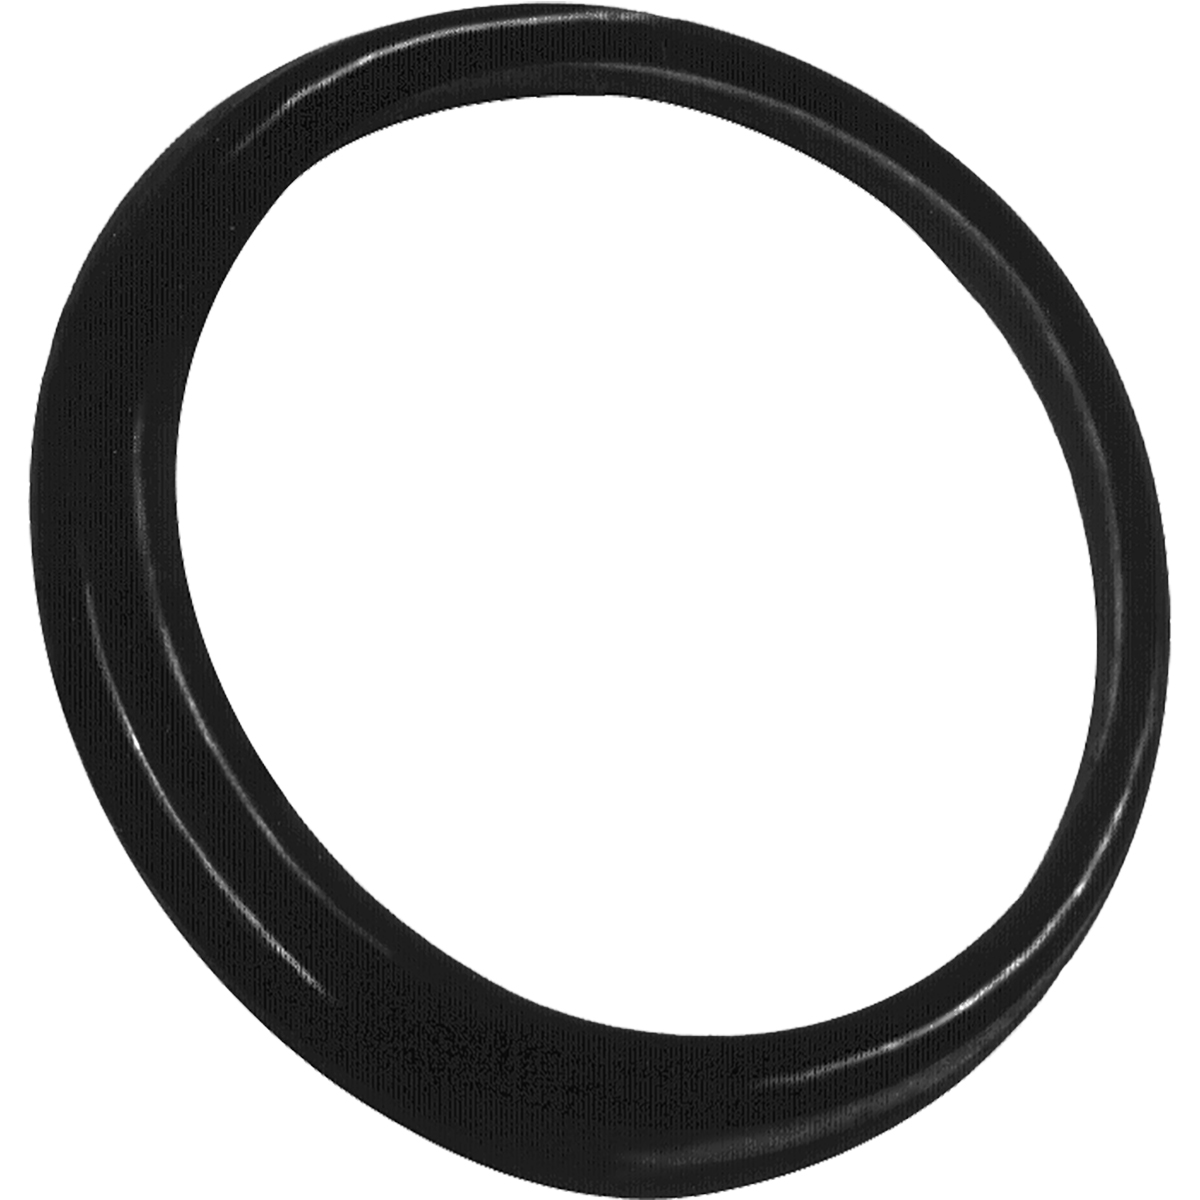 Sewer Adapter Gaskets